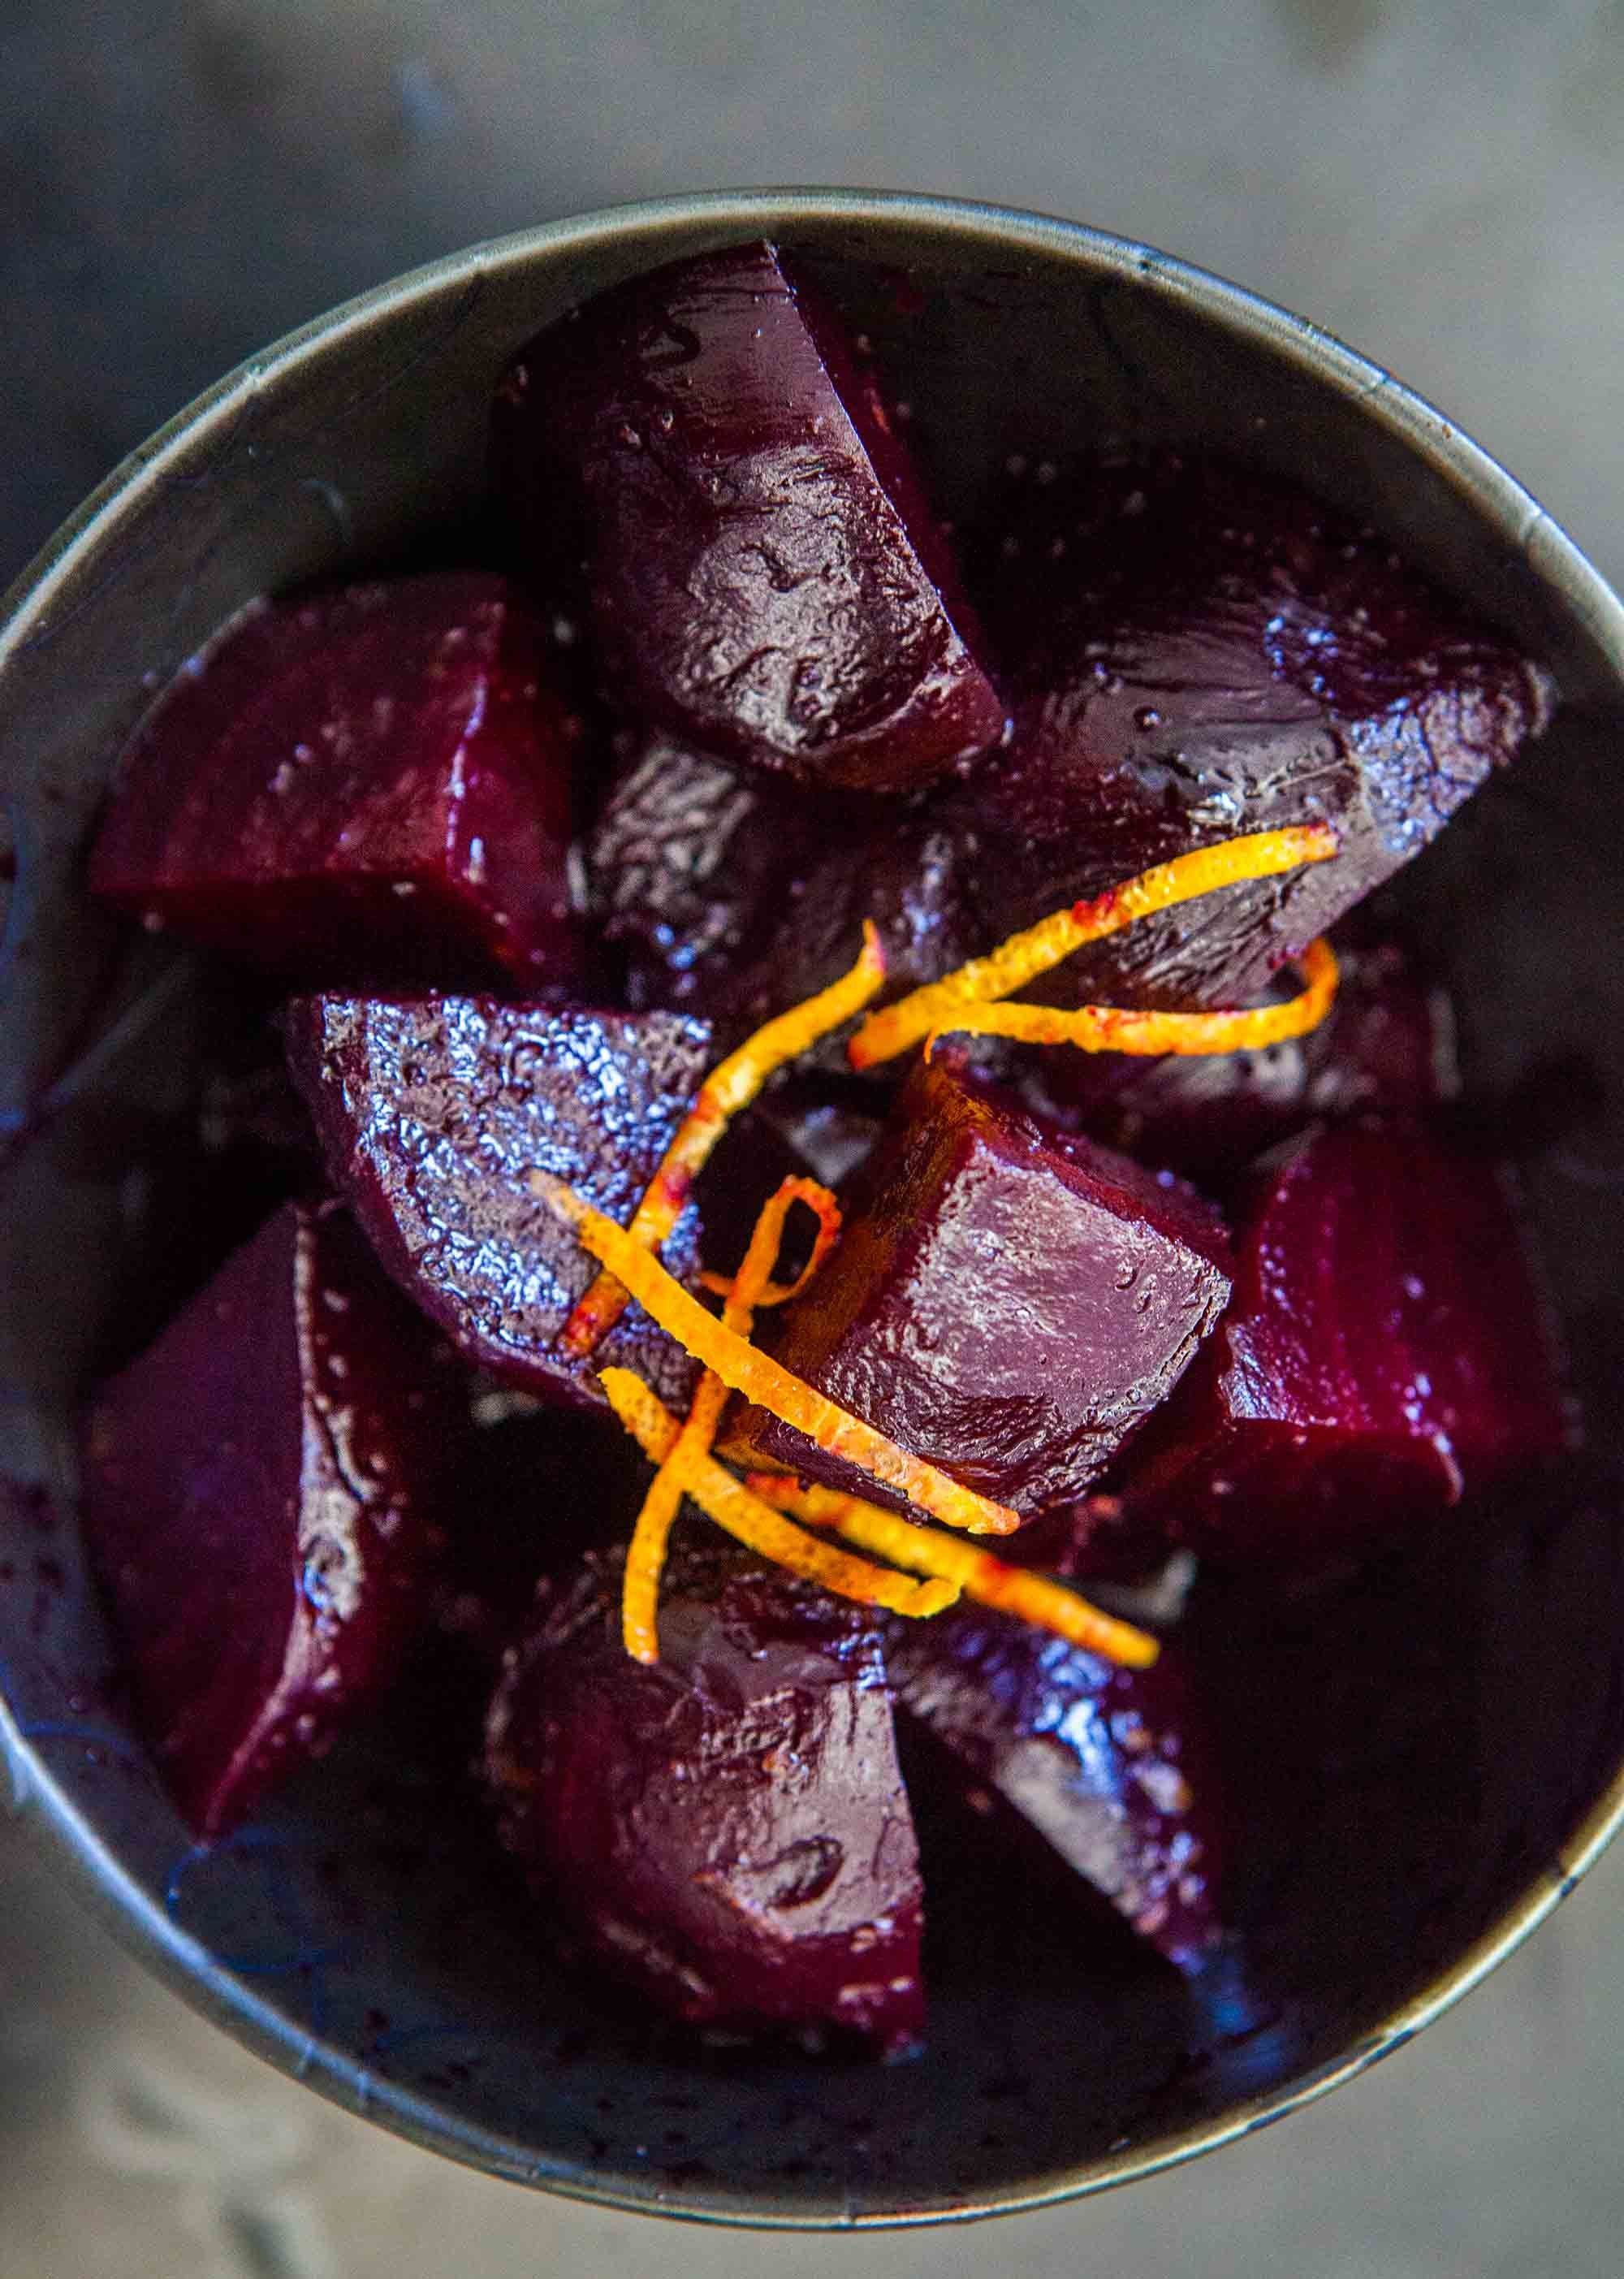 12 Roasted Beets With Balsamic Glaze. Simply Recipes